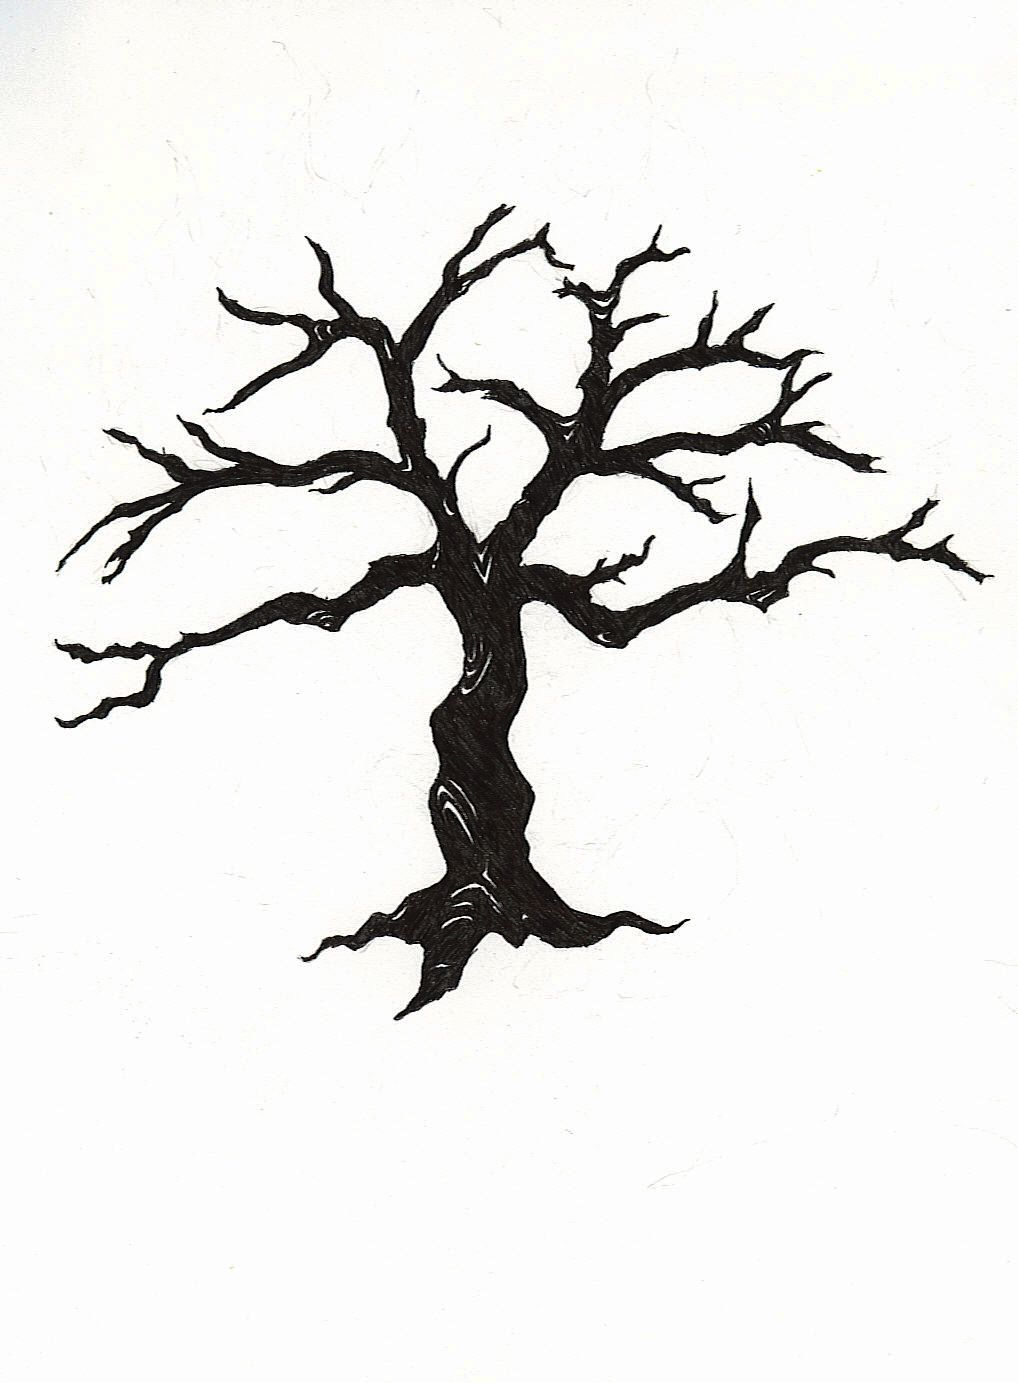 A dead tree clipart clip art royalty free download dead tree clipart - ClipartFest | Paper Cutting Flora | Dead tree ... clip art royalty free download